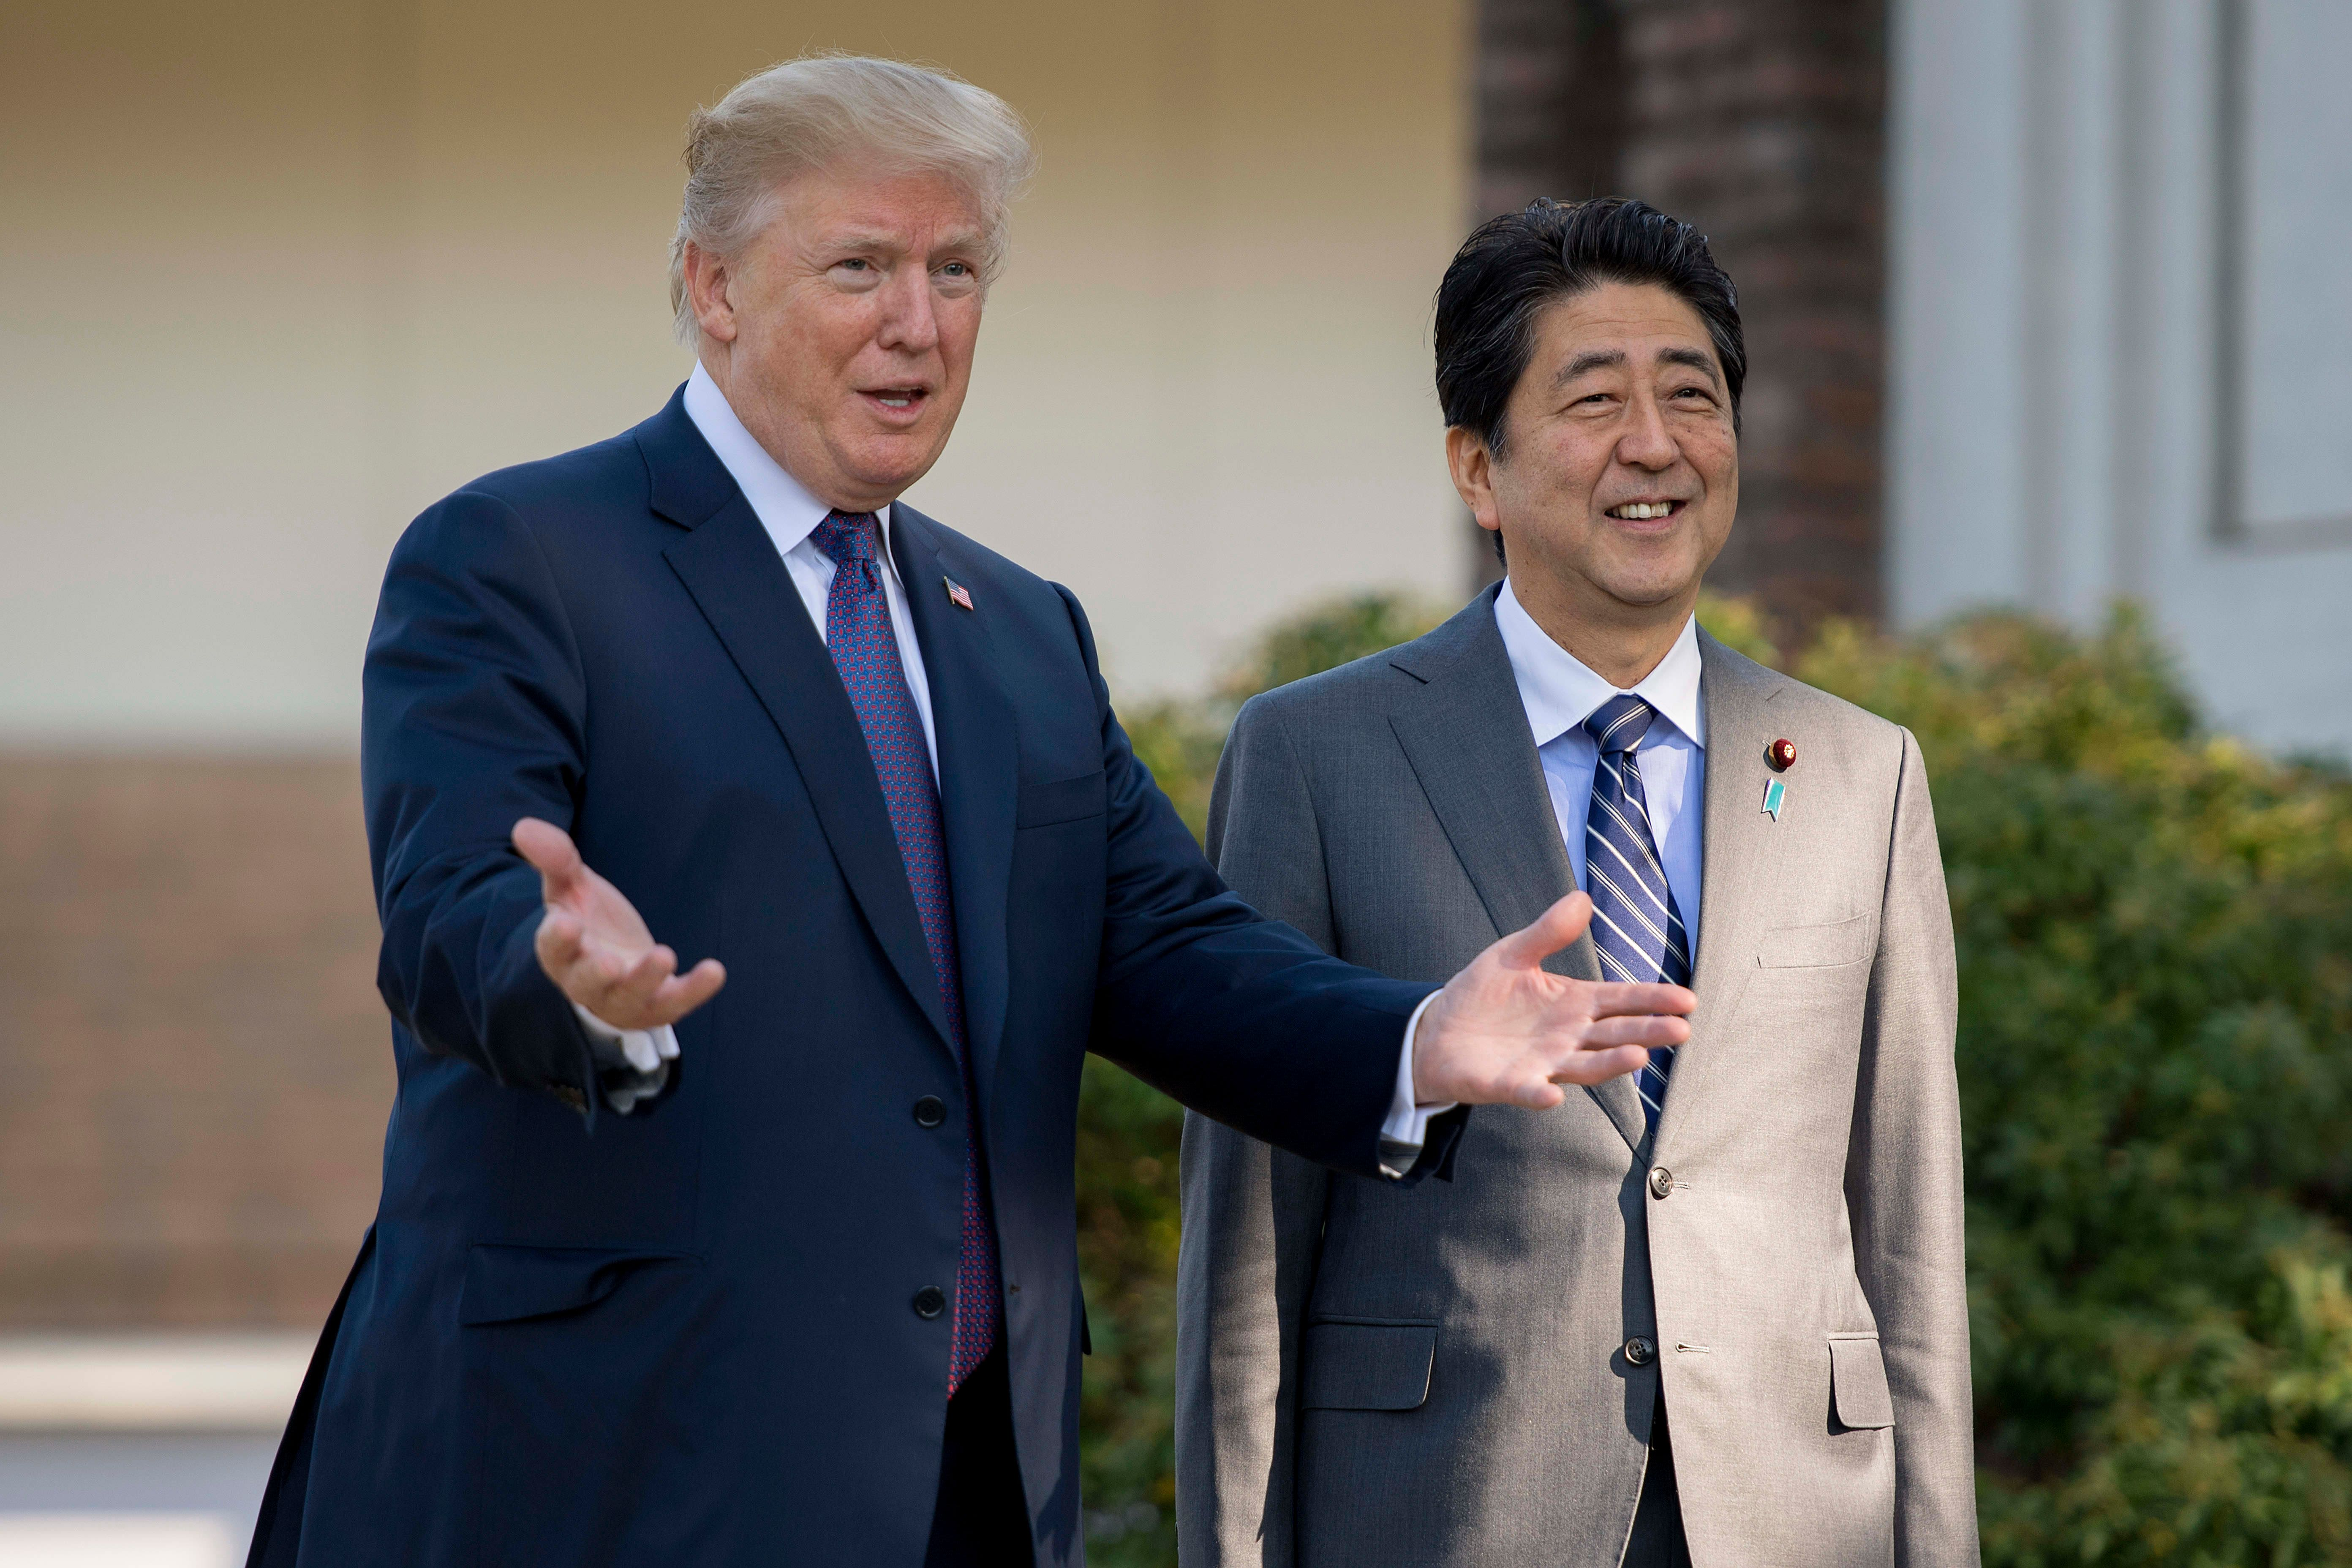 Japan-US trade deal estimated to boost Japan's economy by 0.8%